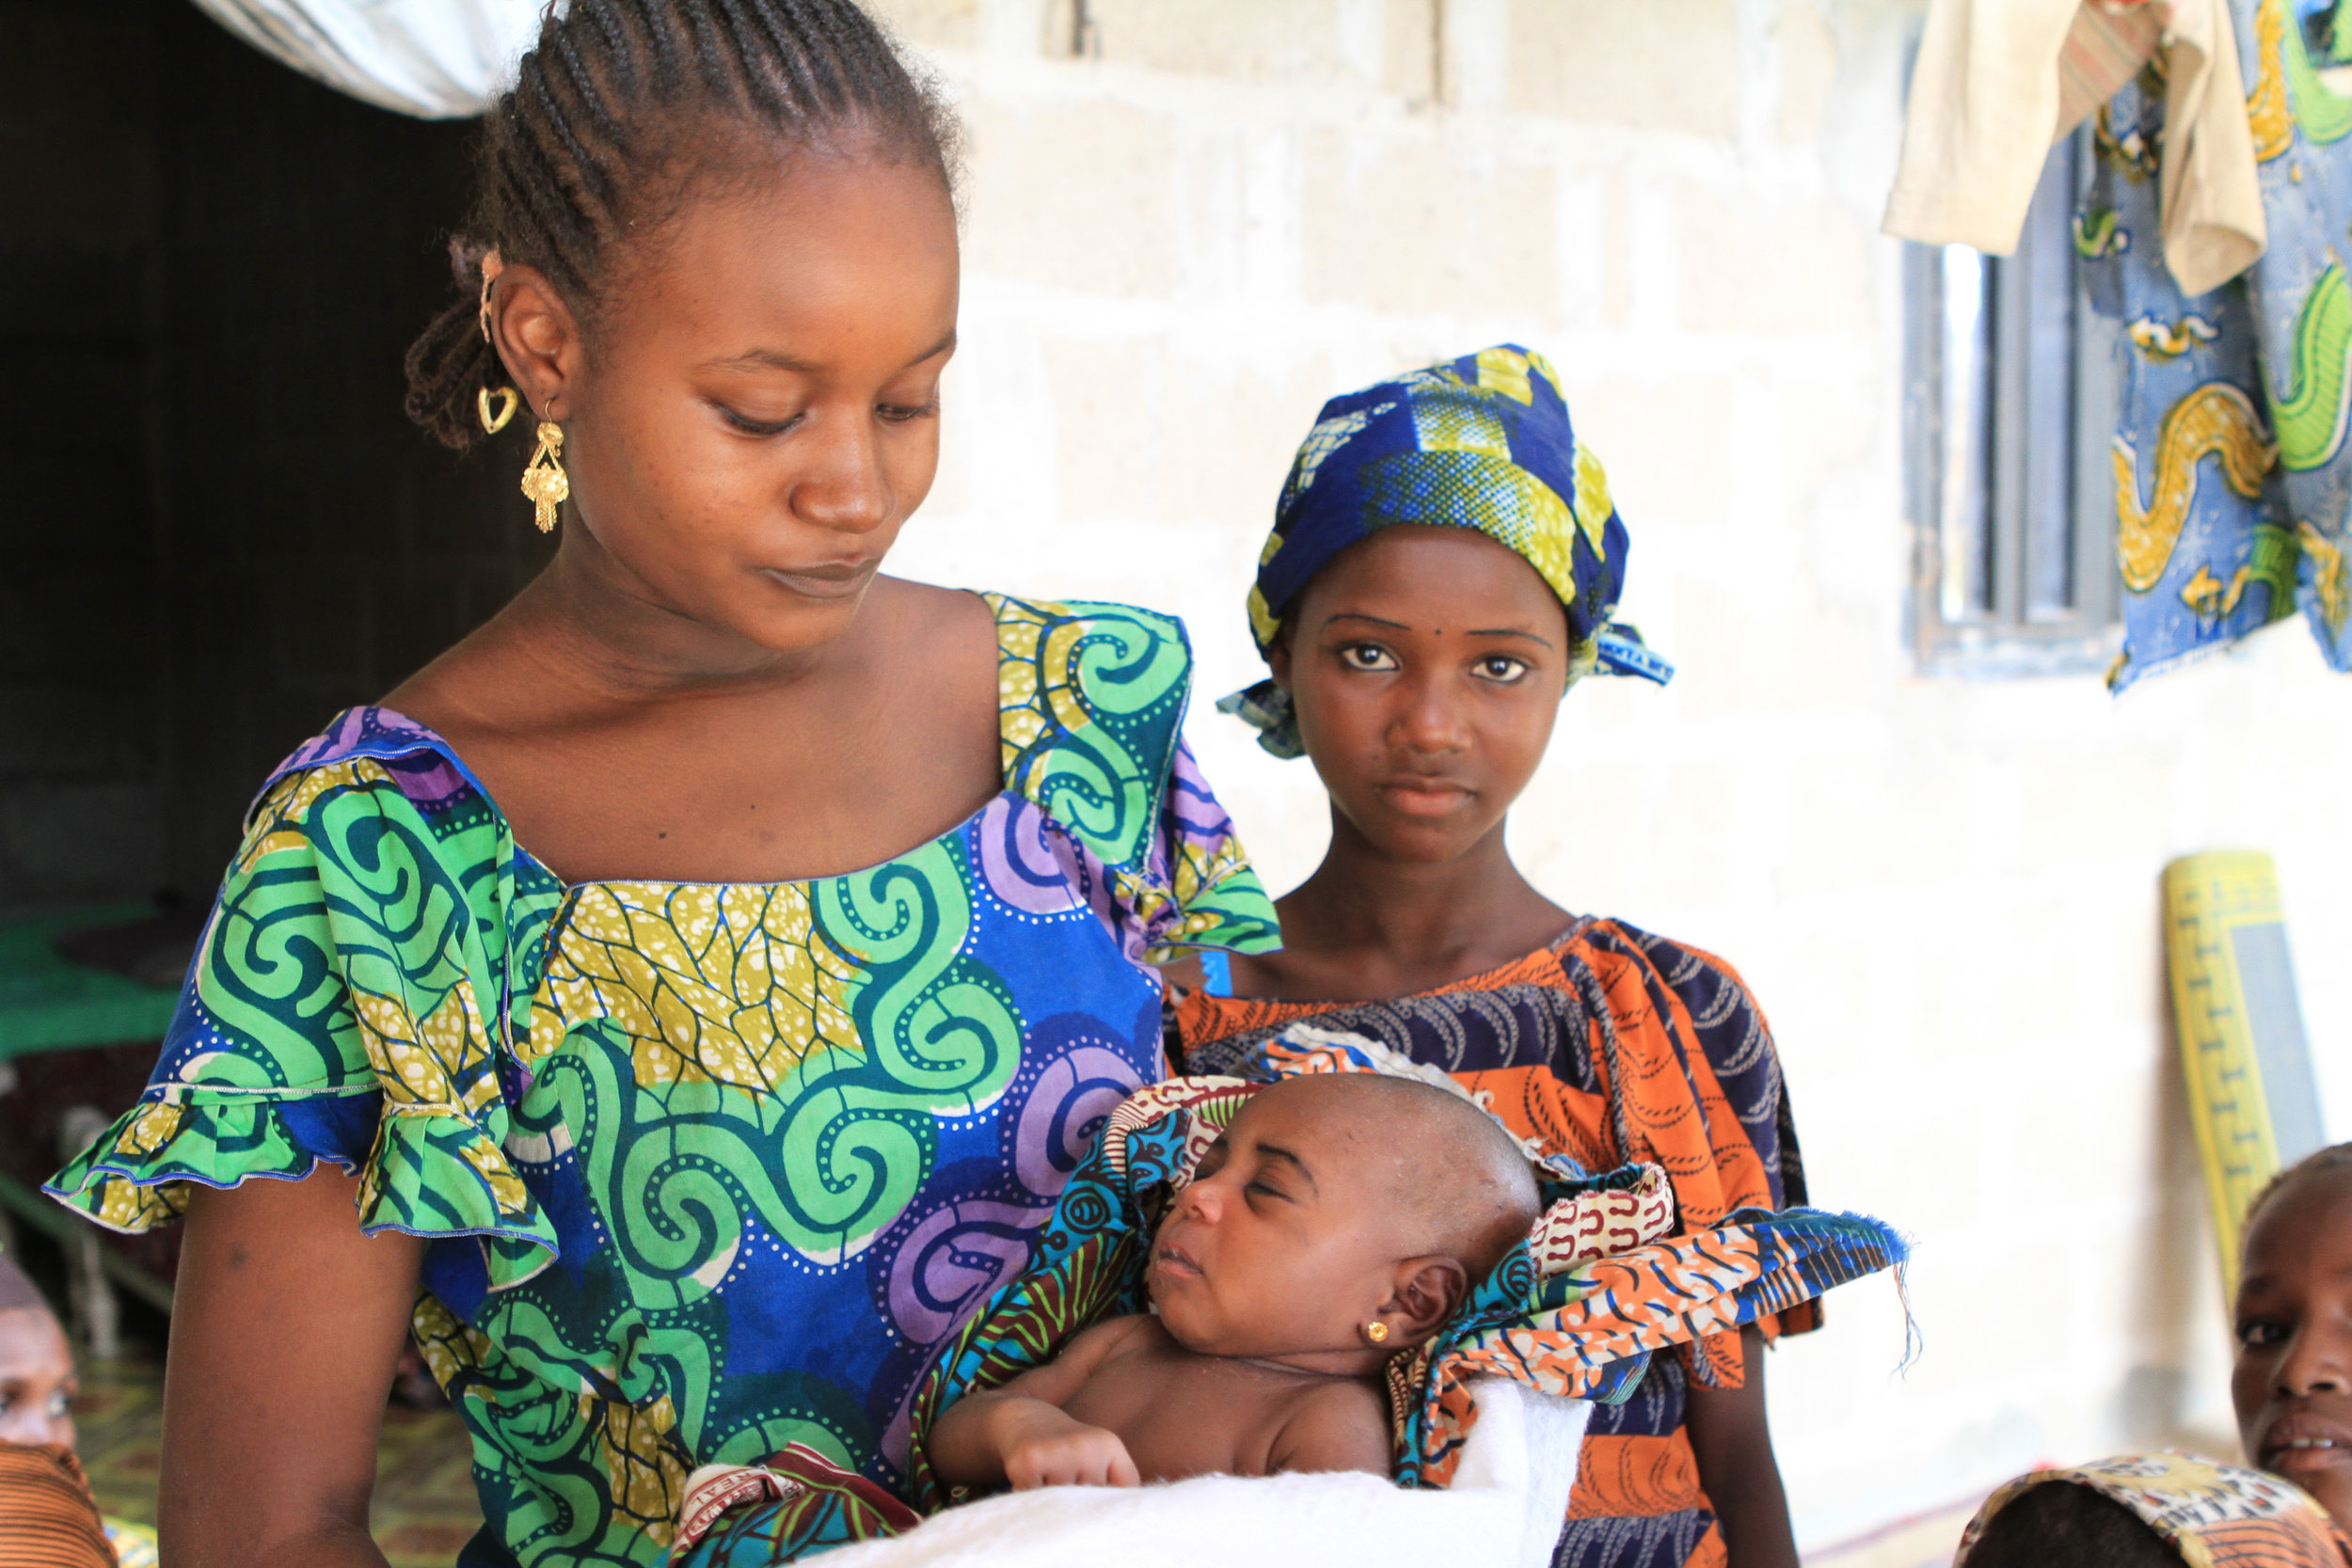 Her older sister came out with this baby. This was hard, as the baby was really really sick. We offered some money so she could take the child to hospital. I don't know if the baby made it. The father in the house was a Boko Haram member, I learned later.